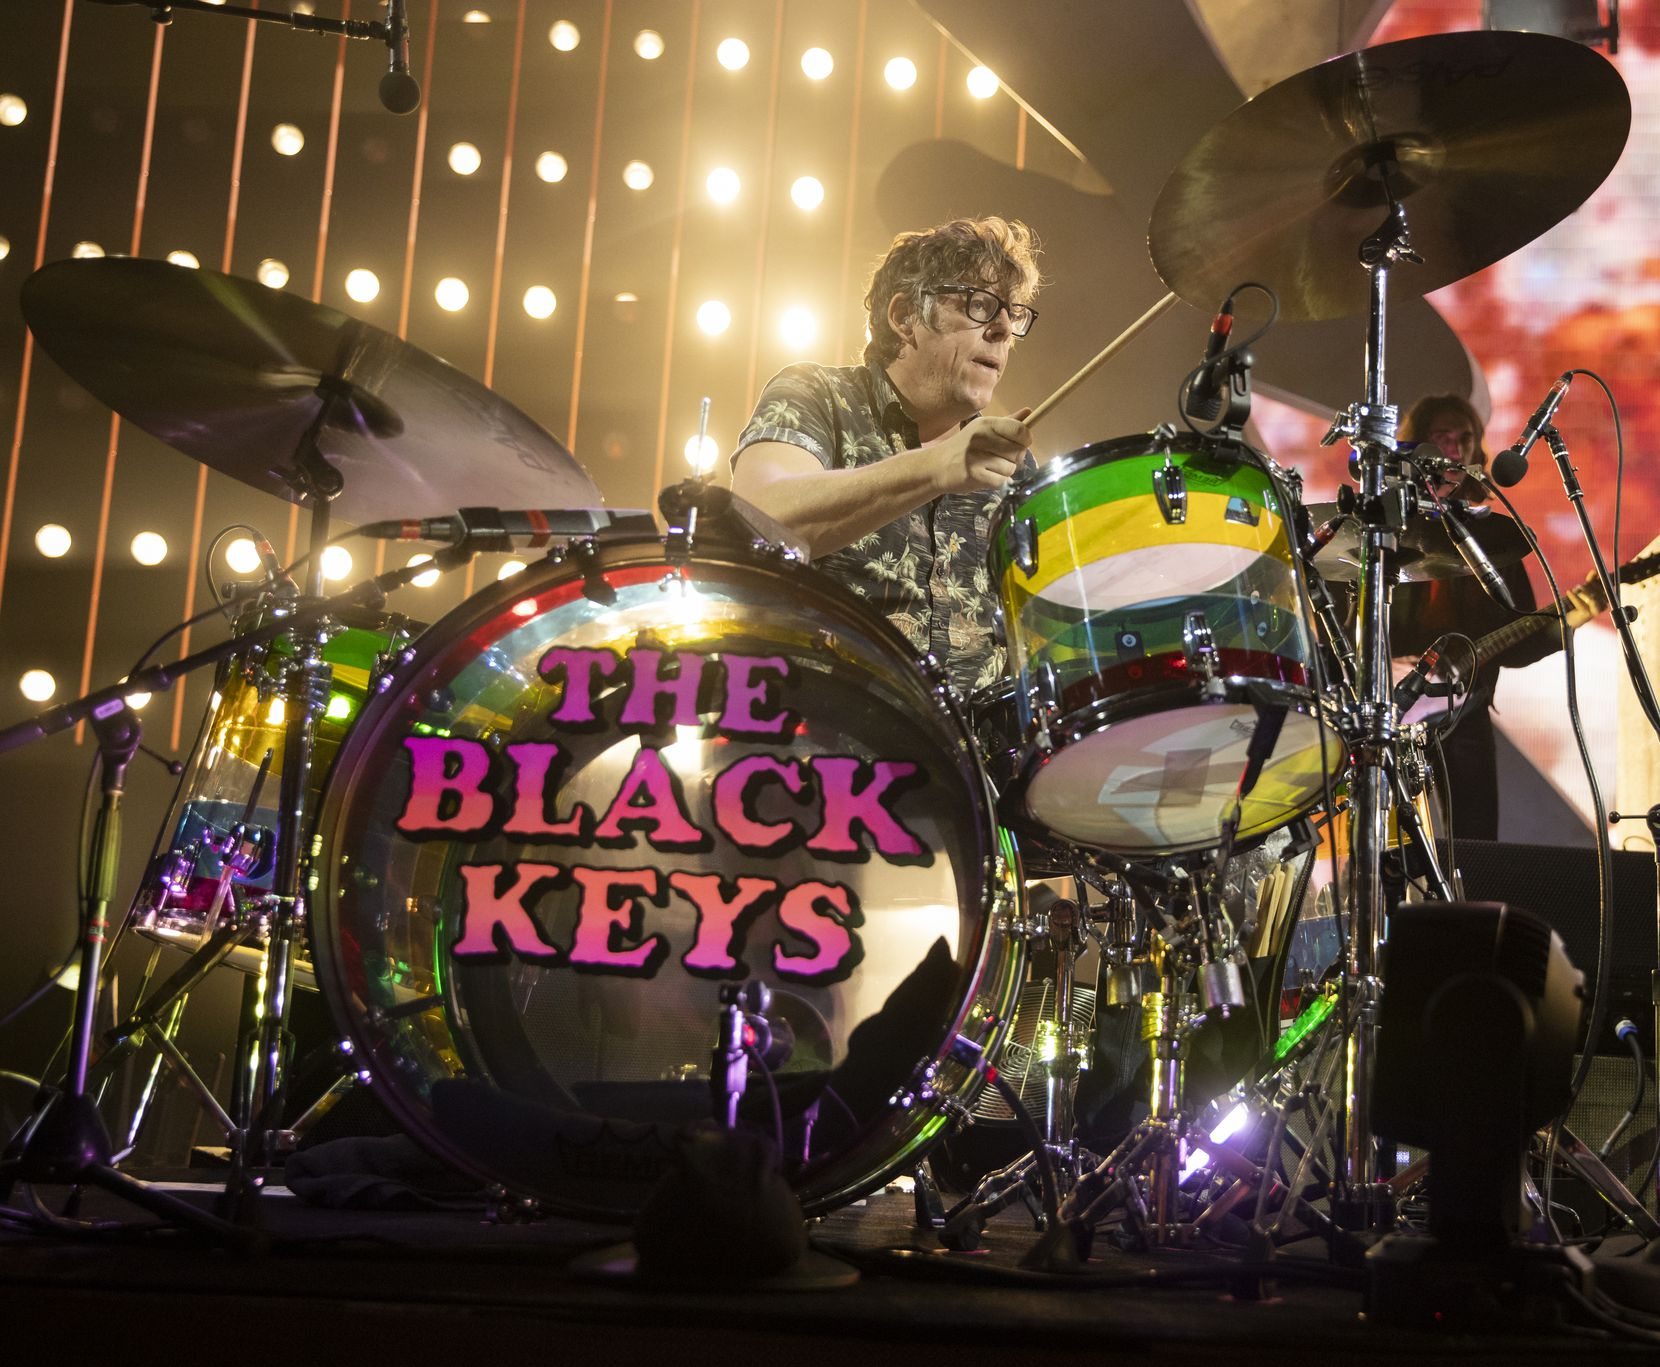 """Patrick Carney of the Black Keys performs as part of the band's """"Let's Rock"""" tour, at Dickies Arena on Nov. 14, 2019 in Fort Worth."""